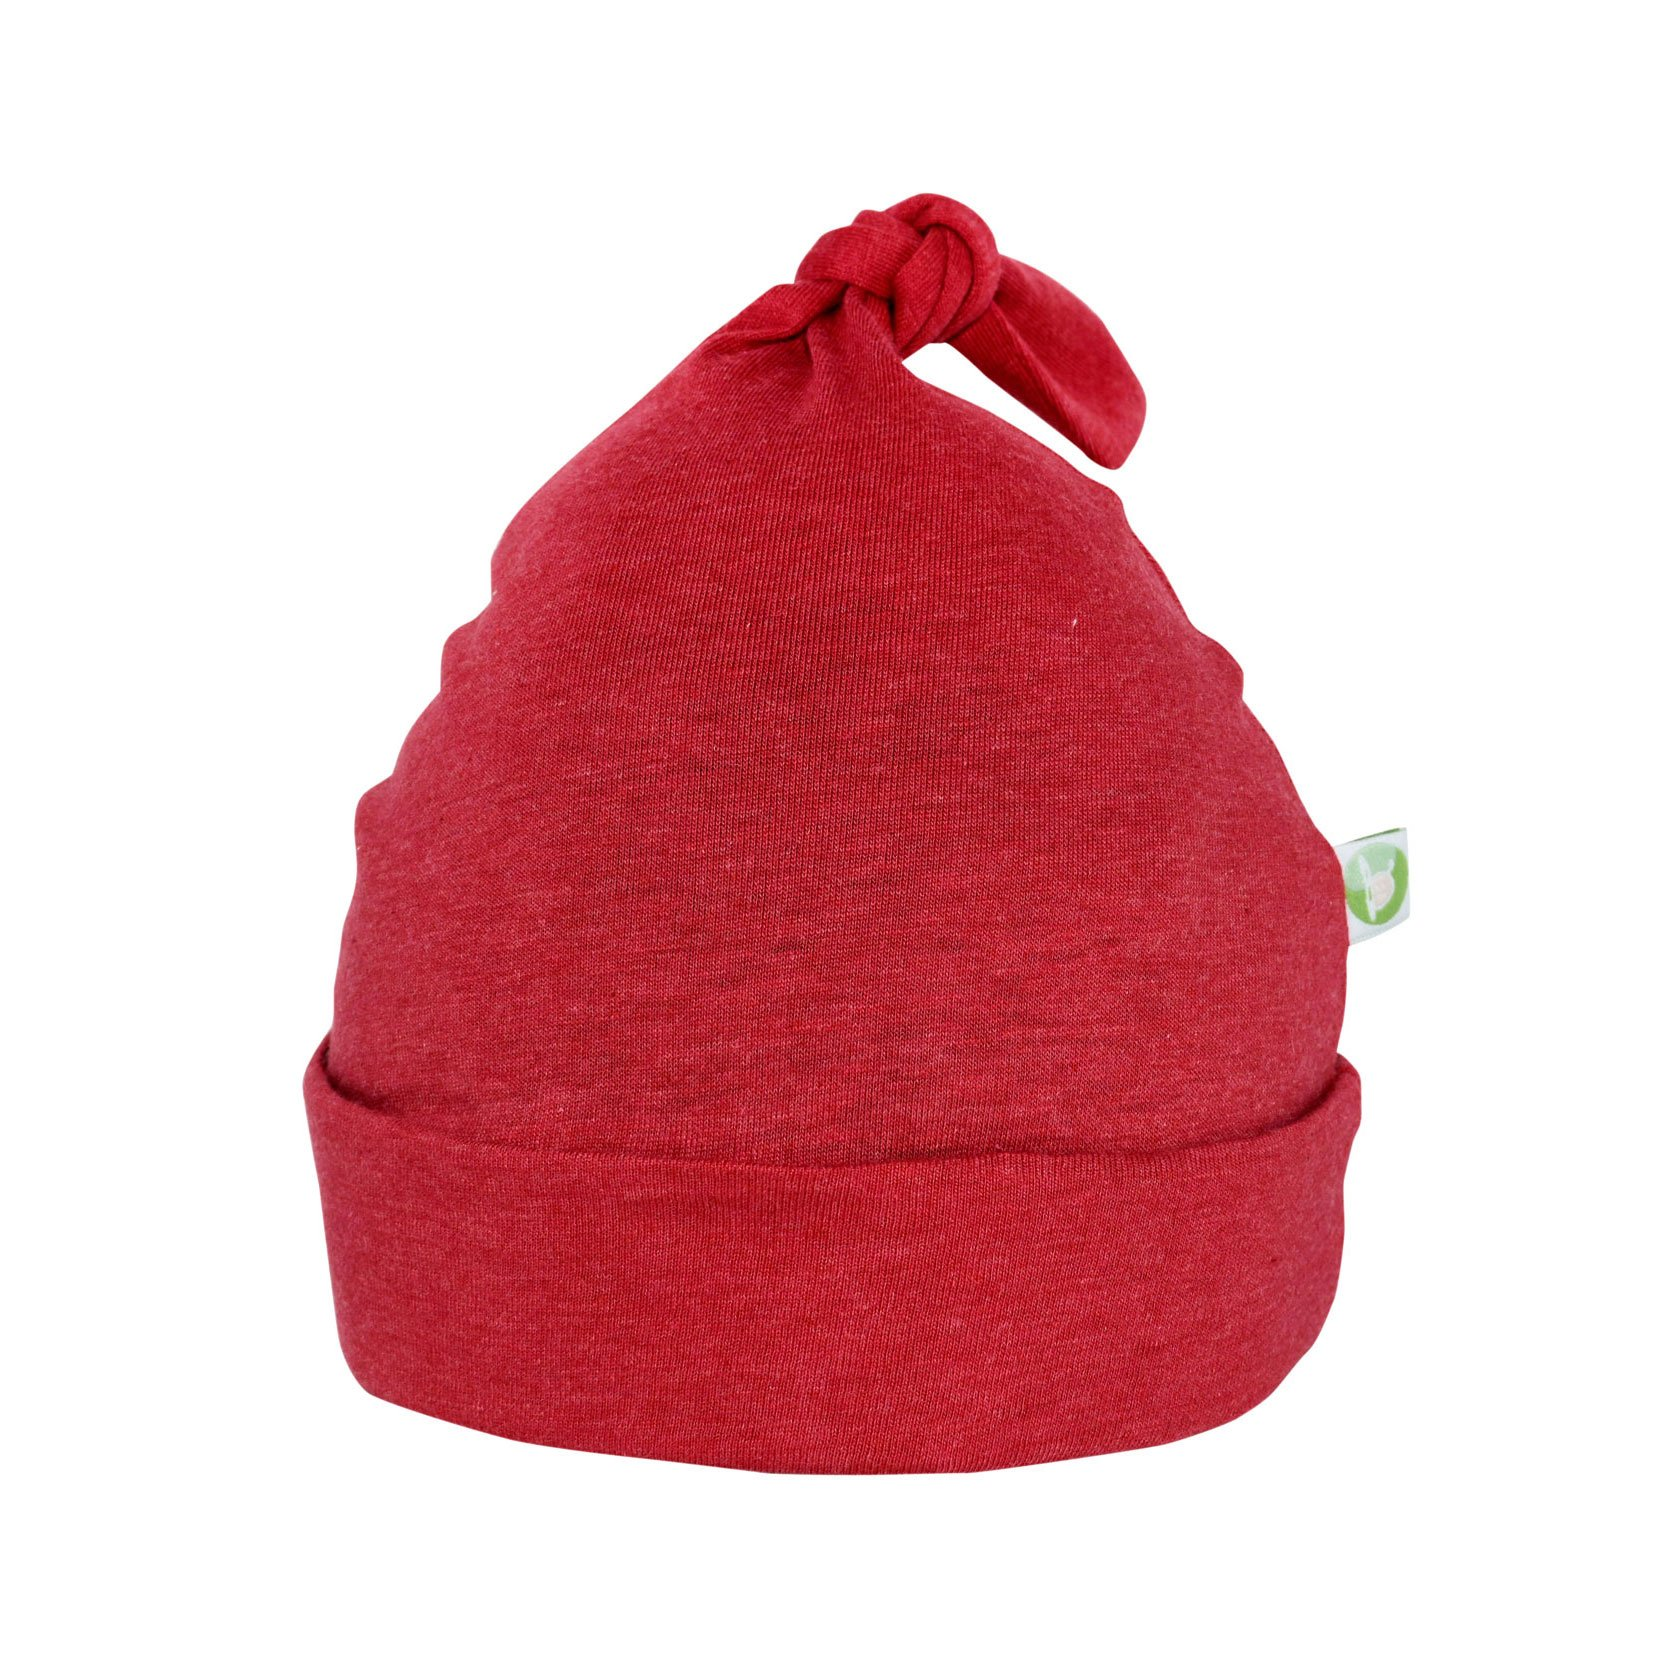 Bum Chicoo Unisex Baby Beanie Hat -Organic Cotton Top Knot Stretchy Soft Hat (Red, 3-6 Months)